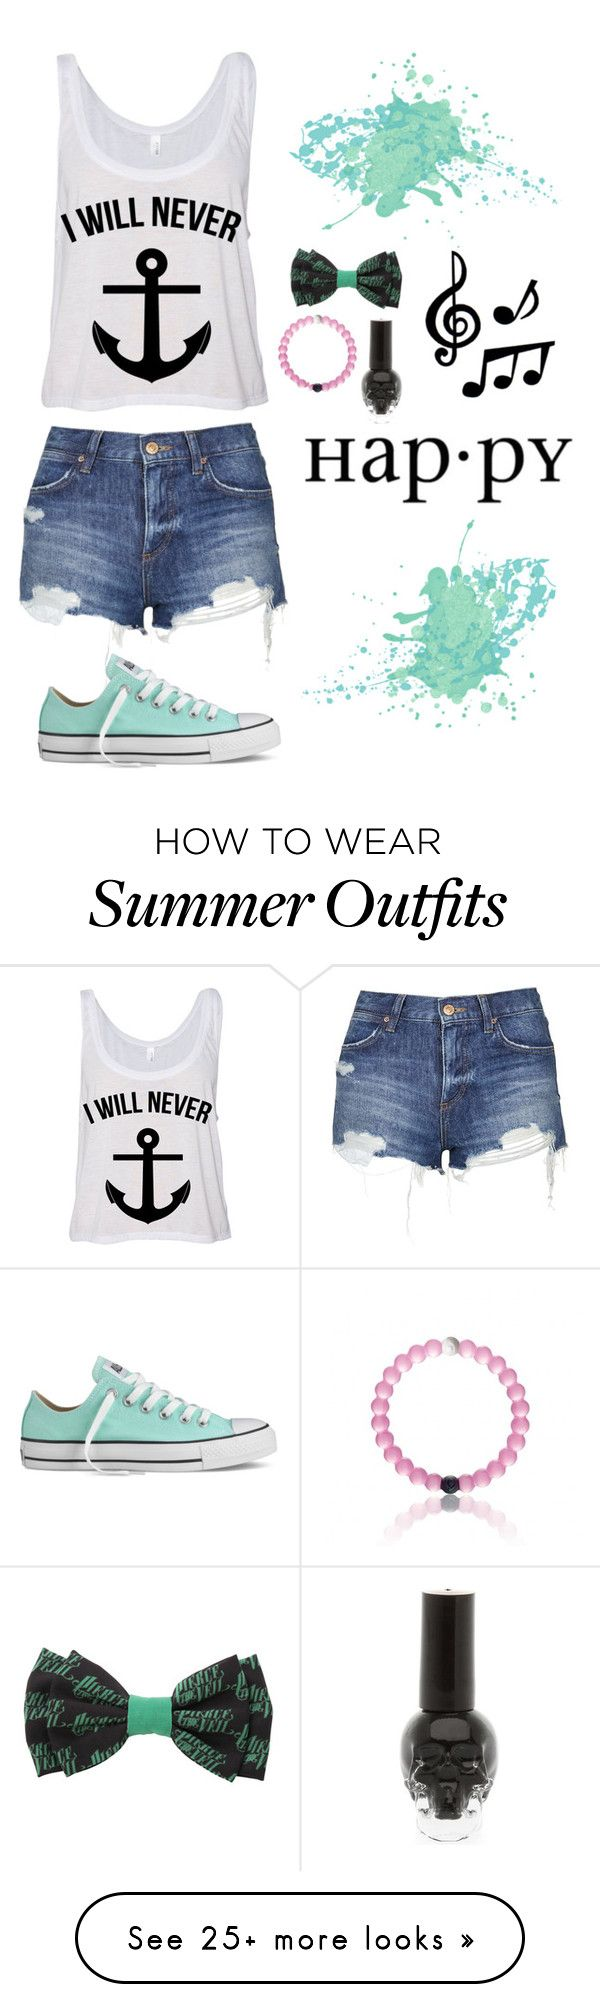 """Refuse to sink"" by emzing-horton on Polyvore featuring Topshop, Converse, ELSE, women's clothing, women's fashion, women, female, woman, misses and juniors"